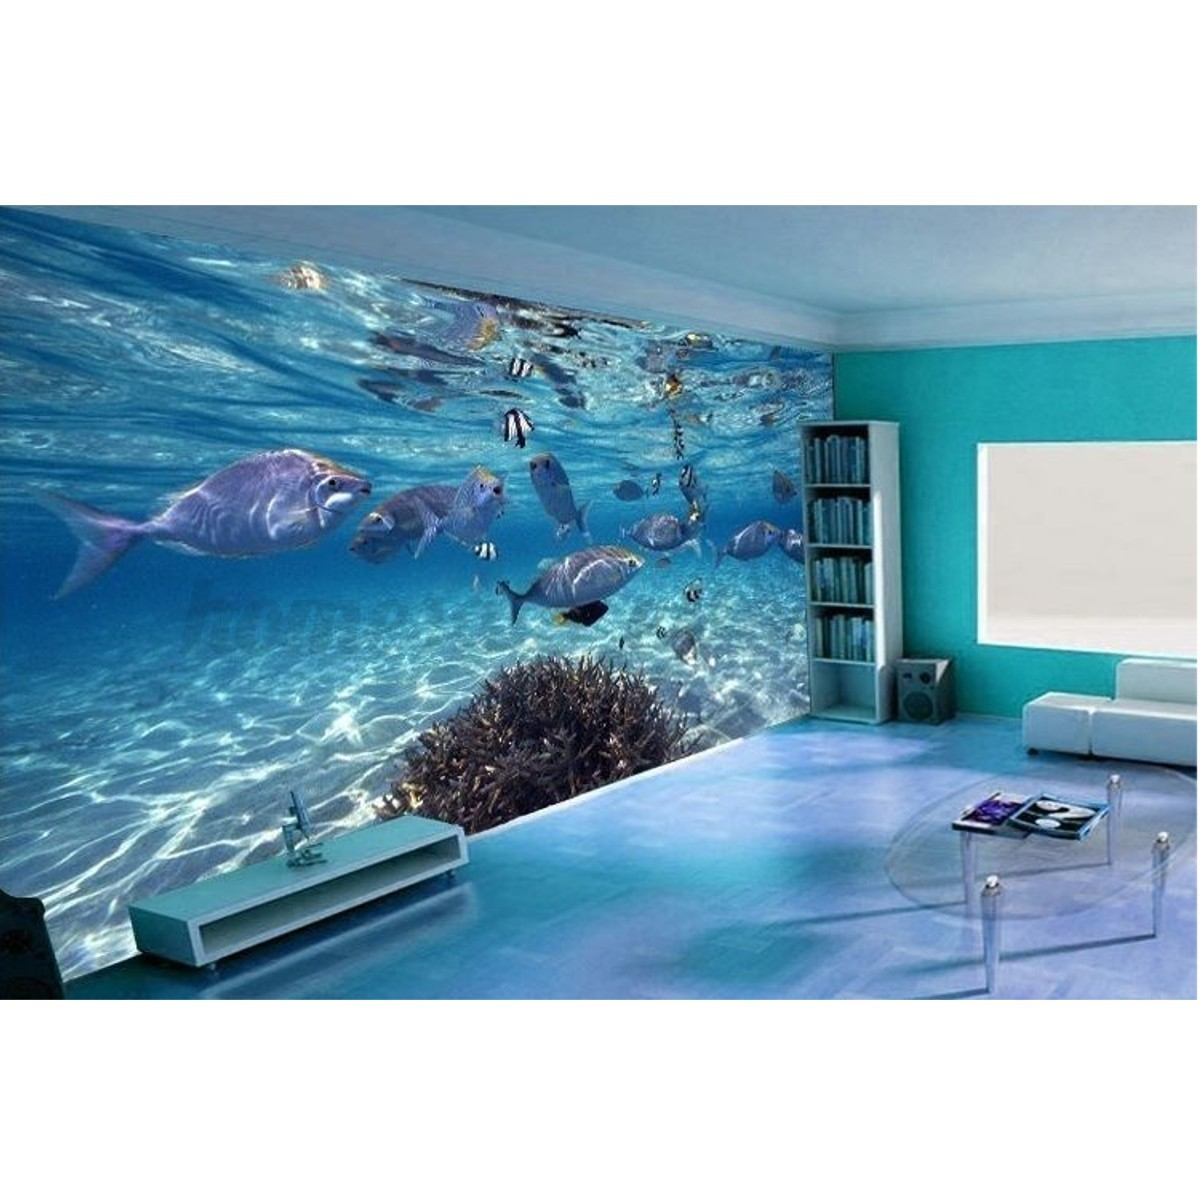 3d wallpaper bedroom mural roll modern luxury sea world for Home decor 3d wallpaper